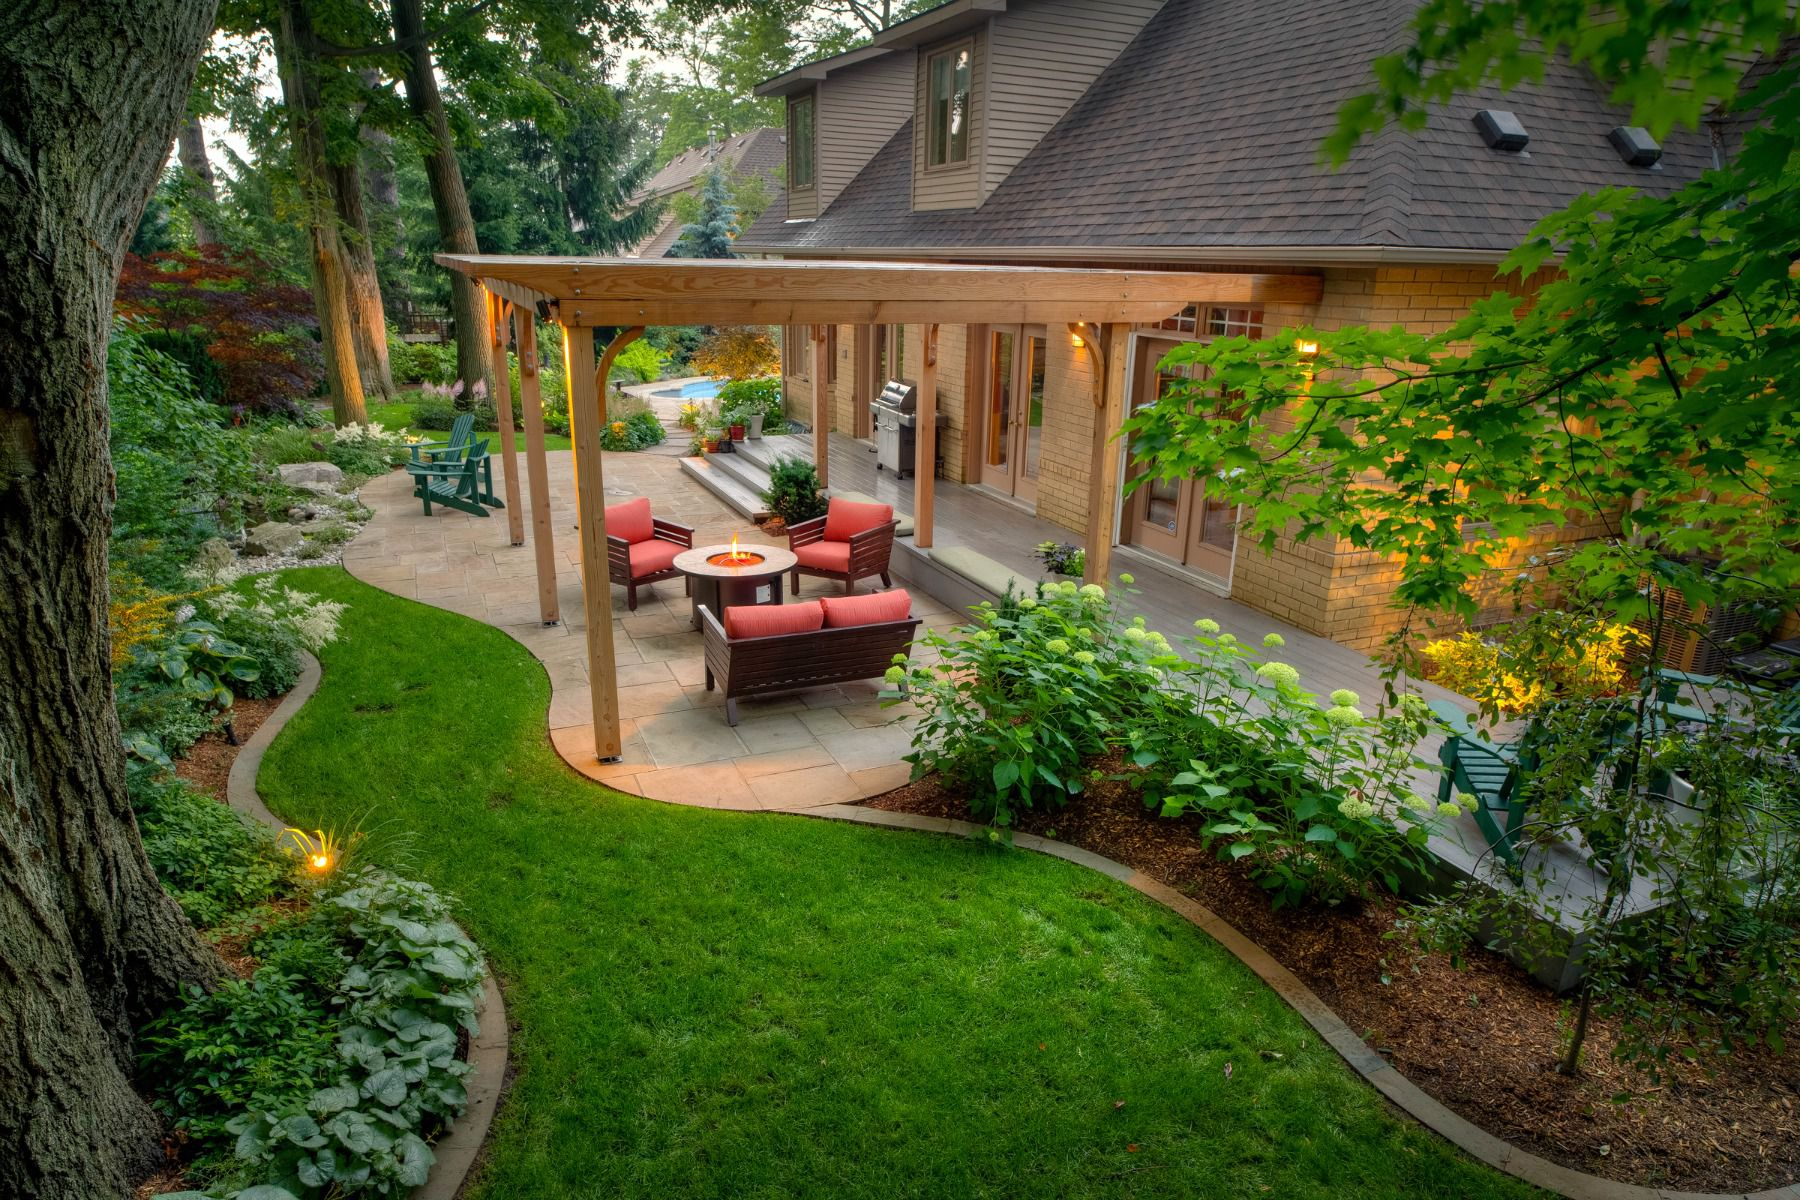 50 Backyard Landscaping Ideas To Inspire You with regard to Pics Of Landscaped Backyards